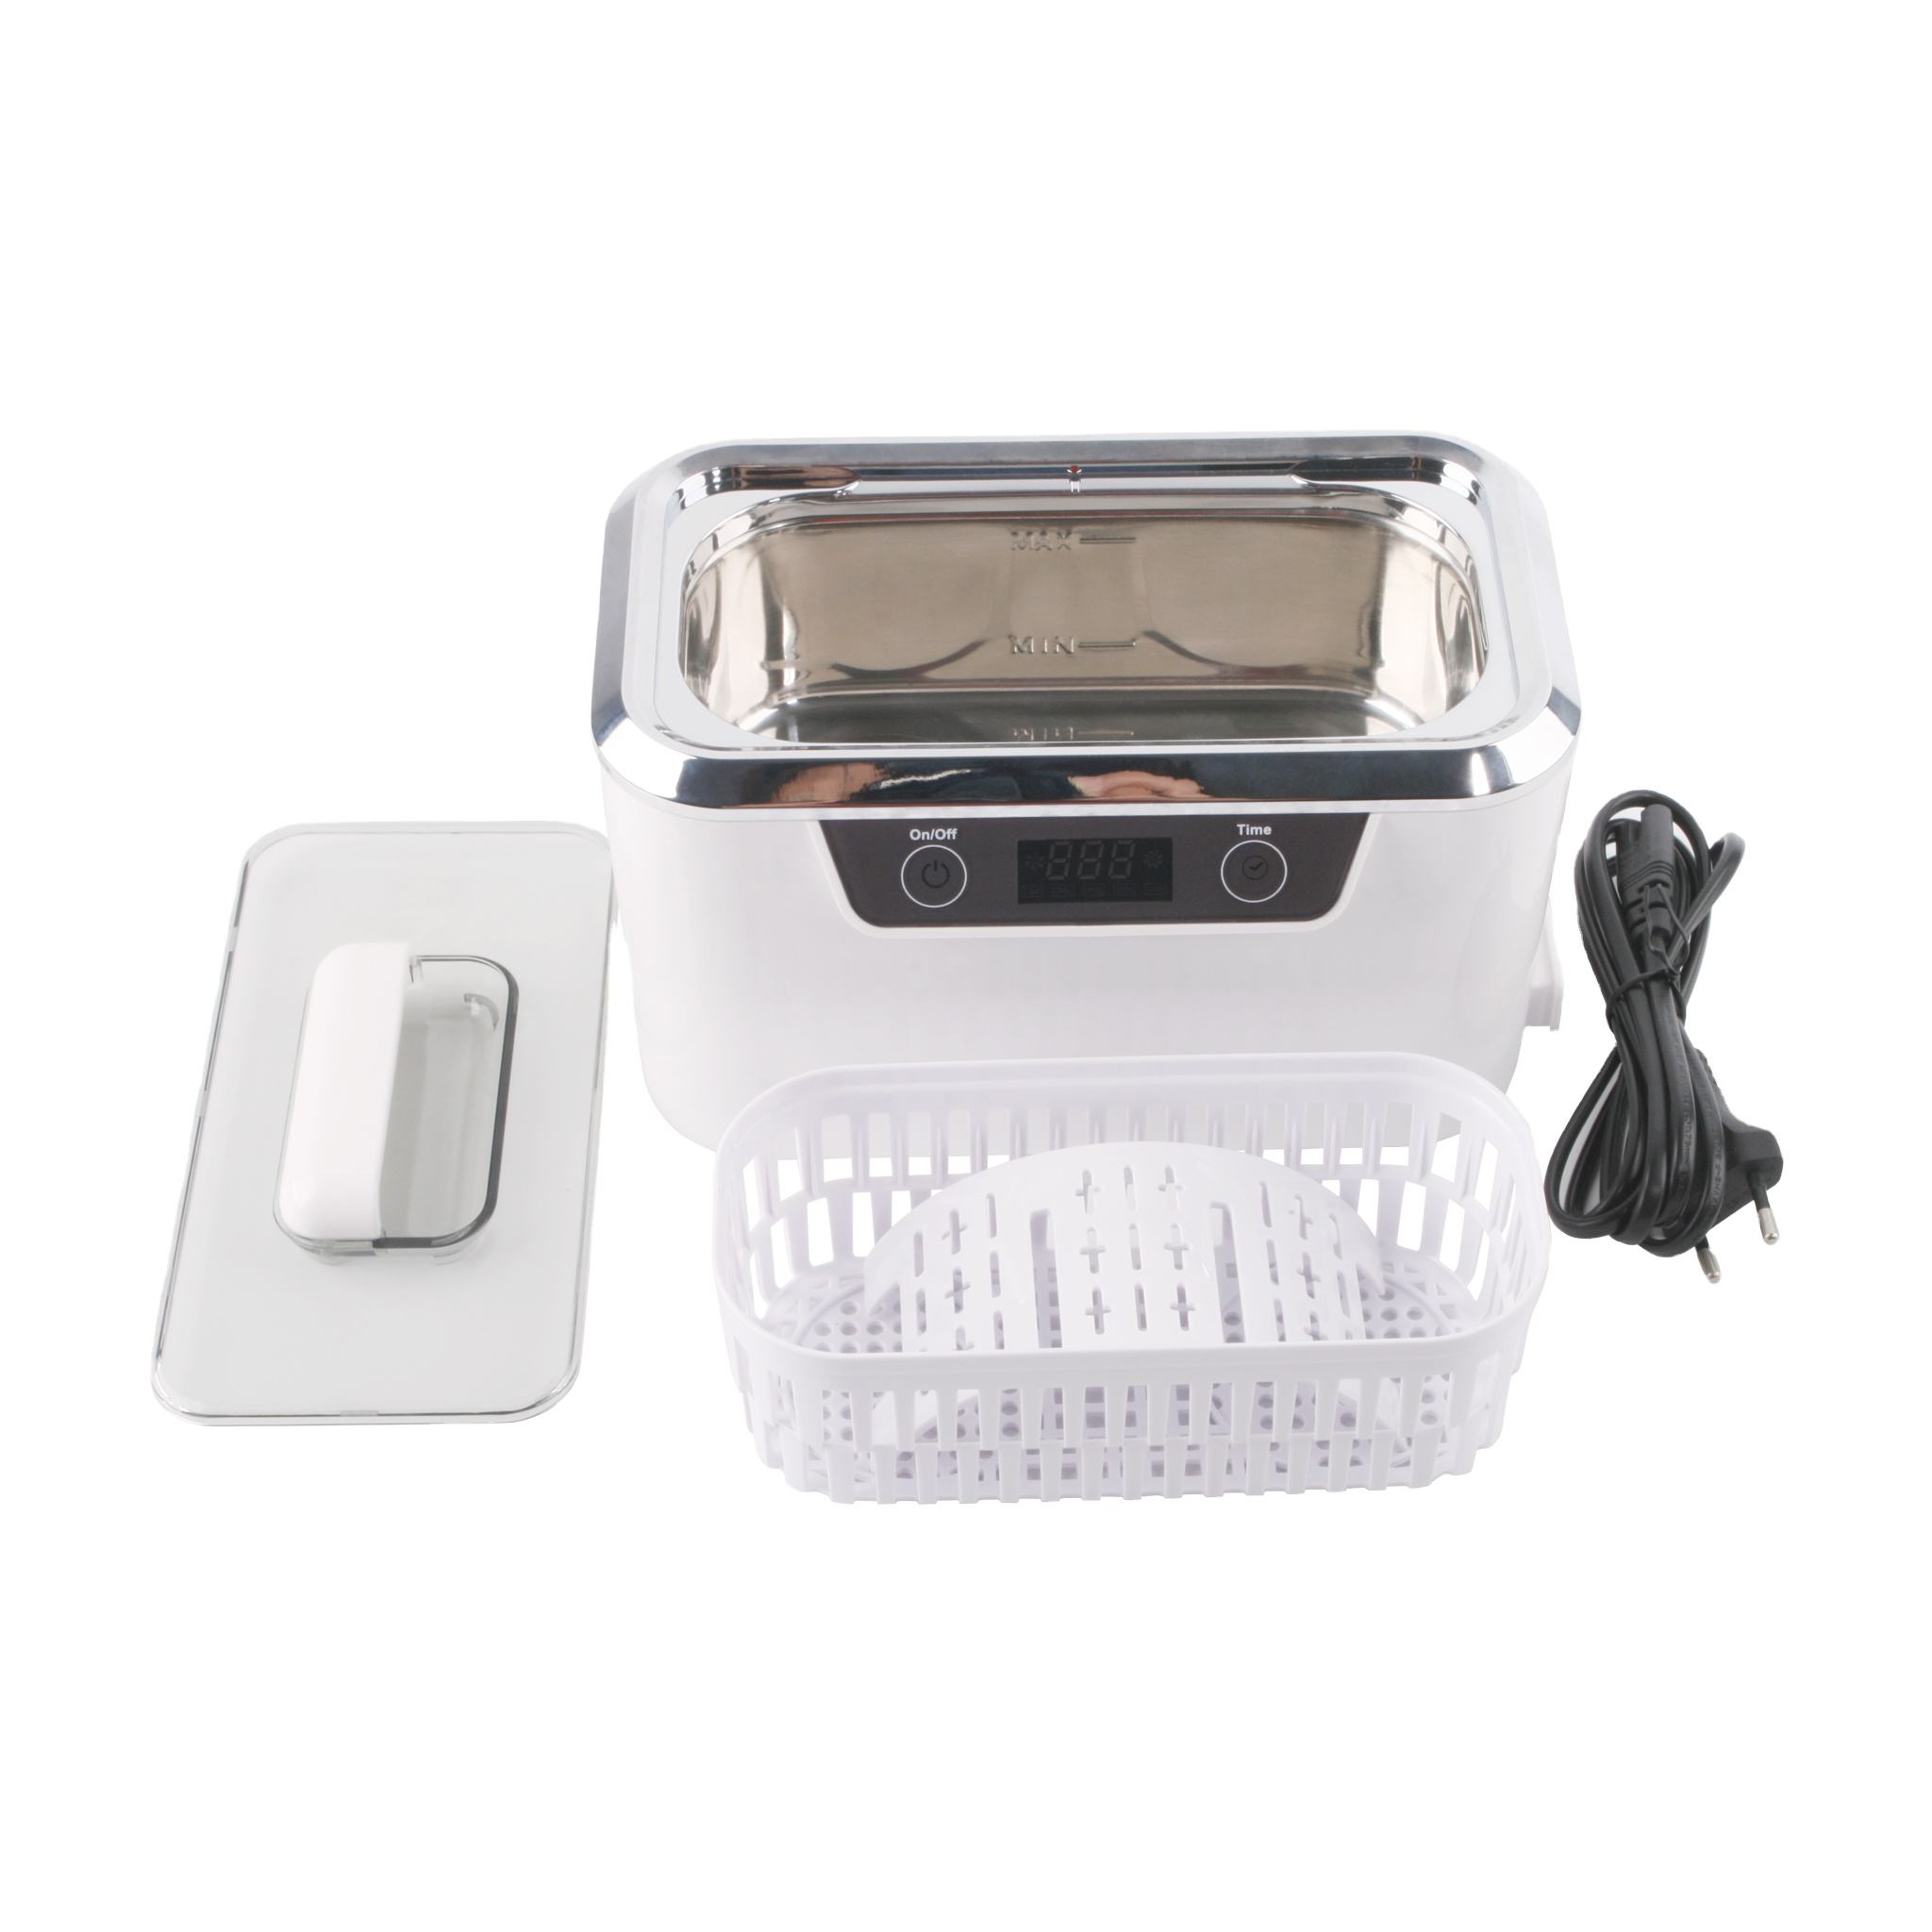 Professional Ultrasonic Jewelry Cleaner with Digital Timer for Eyeglasses Rings Coins